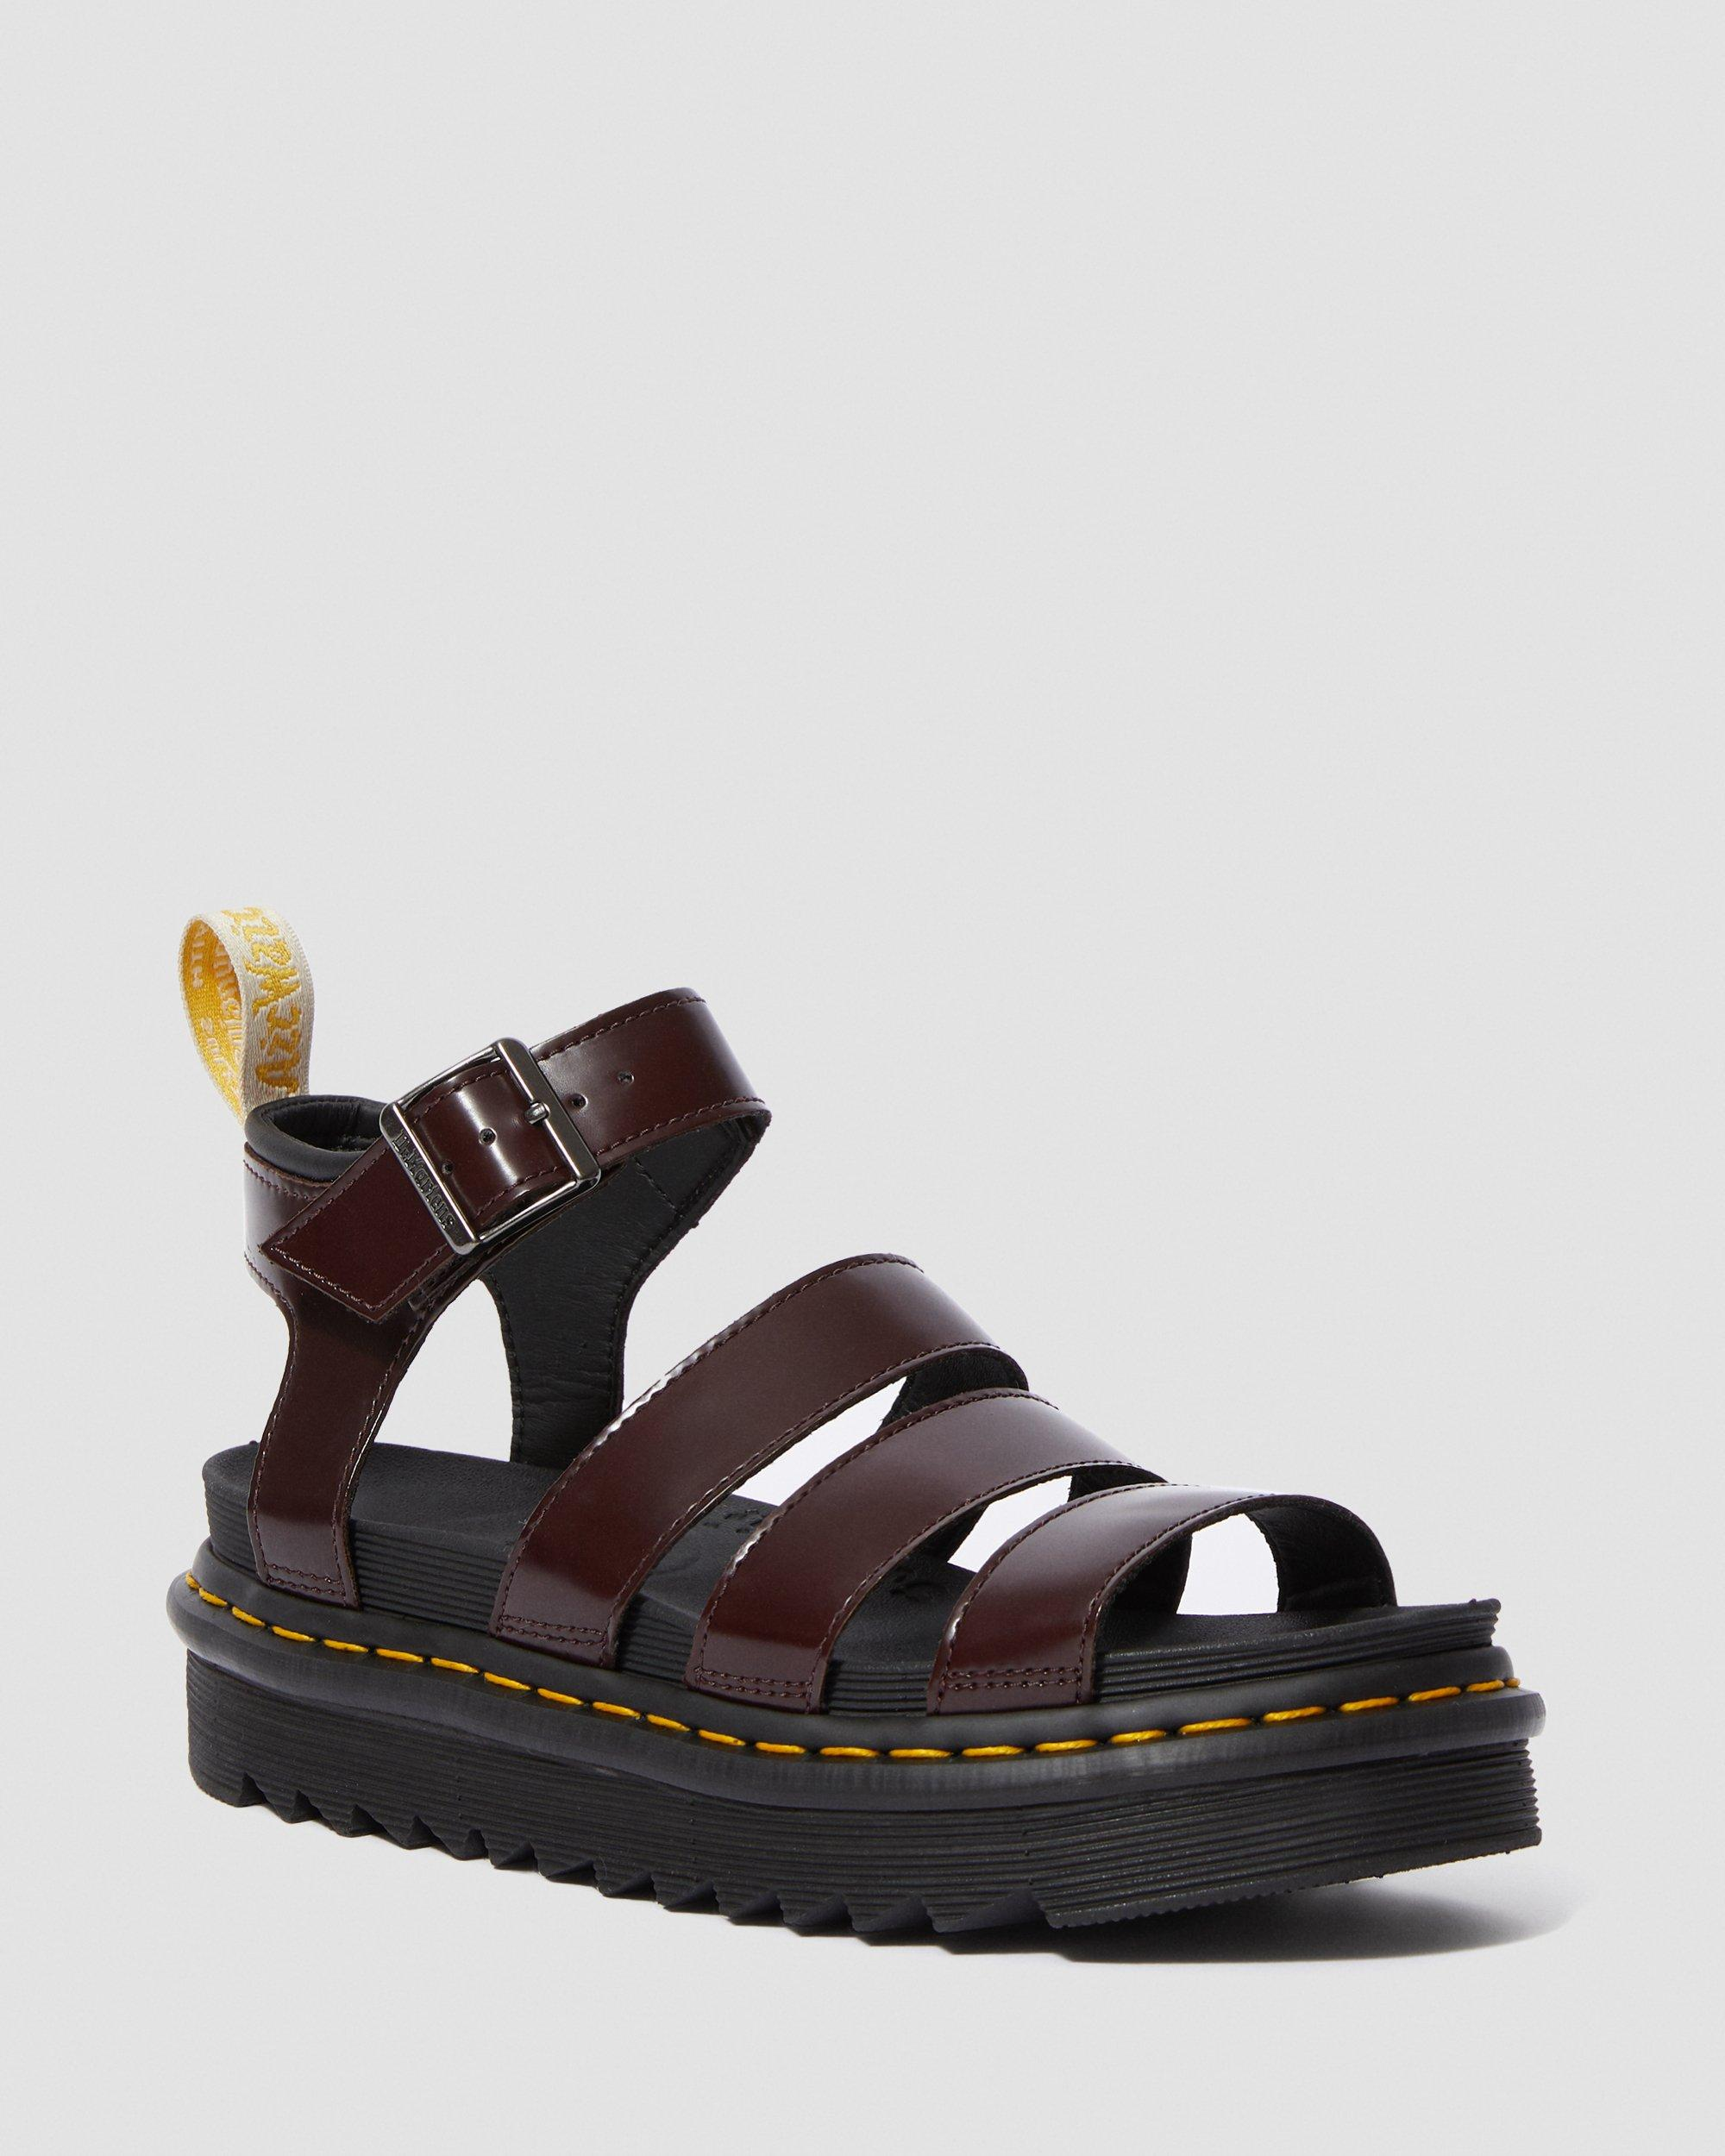 Vegan Blaire Oxford Brush Sandals | Summer Shoes | Leather